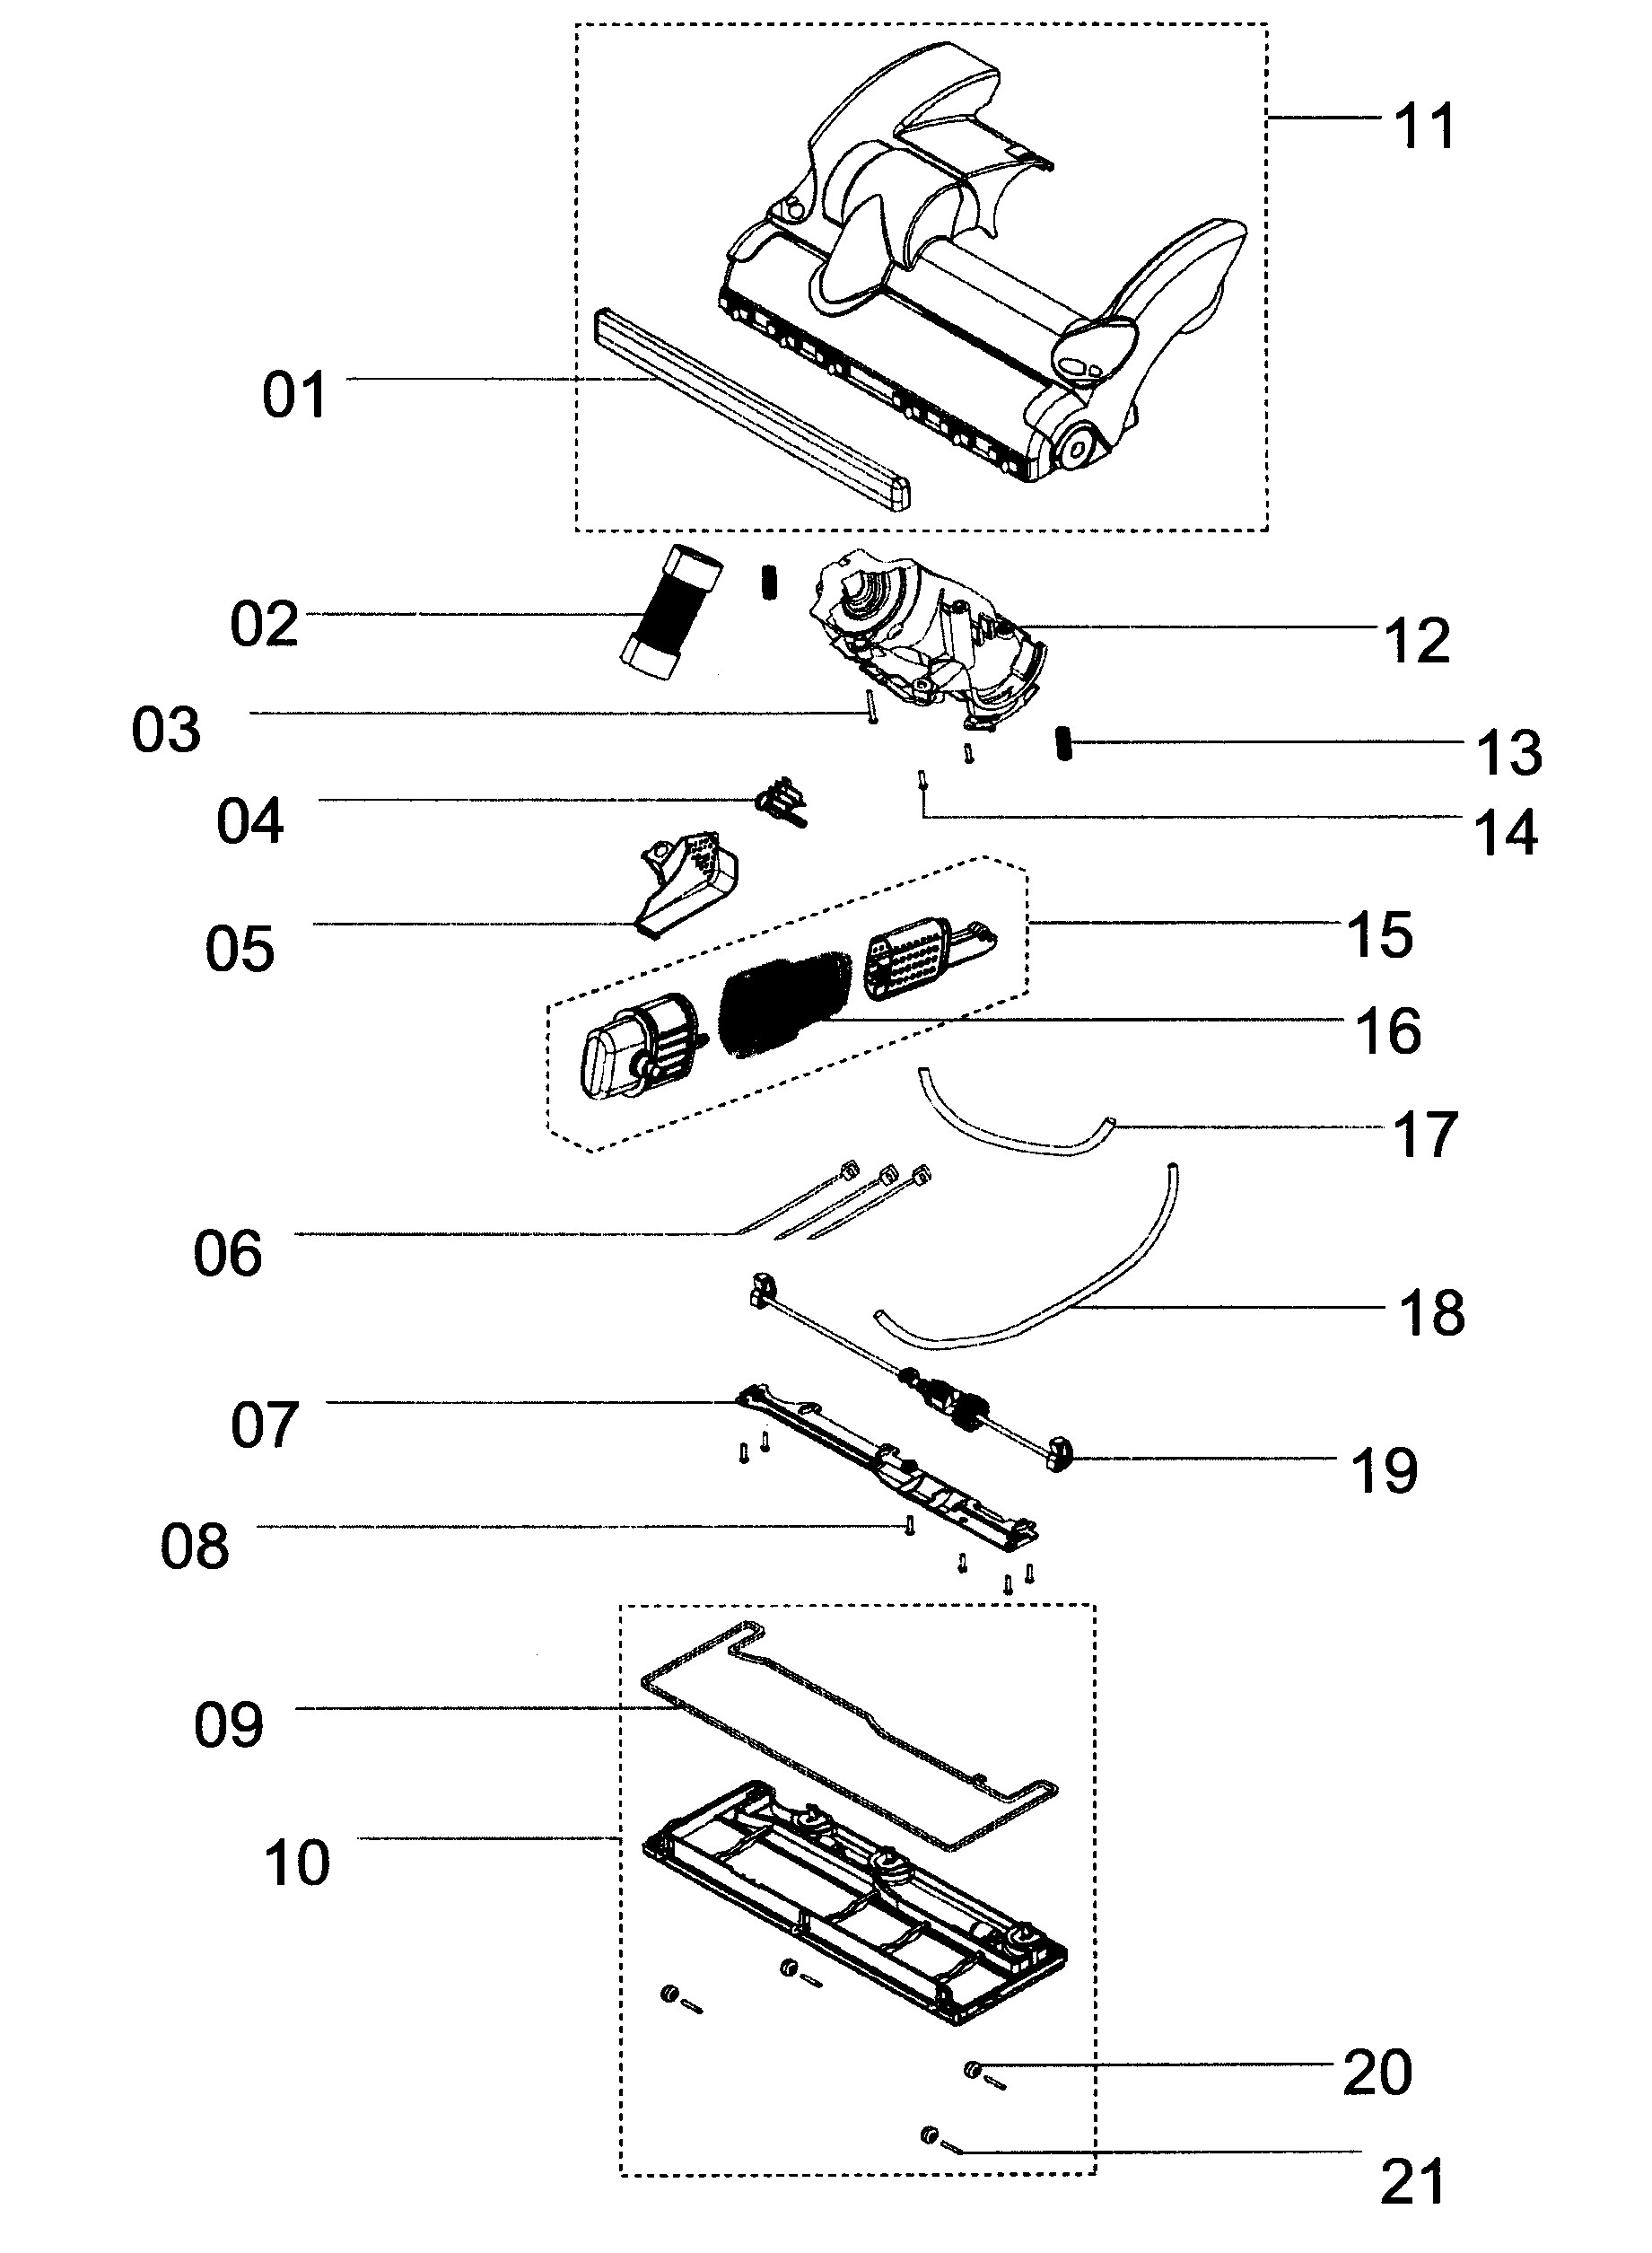 Dyson Dc15 Parts Diagram Dyson Model Dc28 Vacuum Upright Genuine Parts Of Dyson Dc15 Parts Diagram